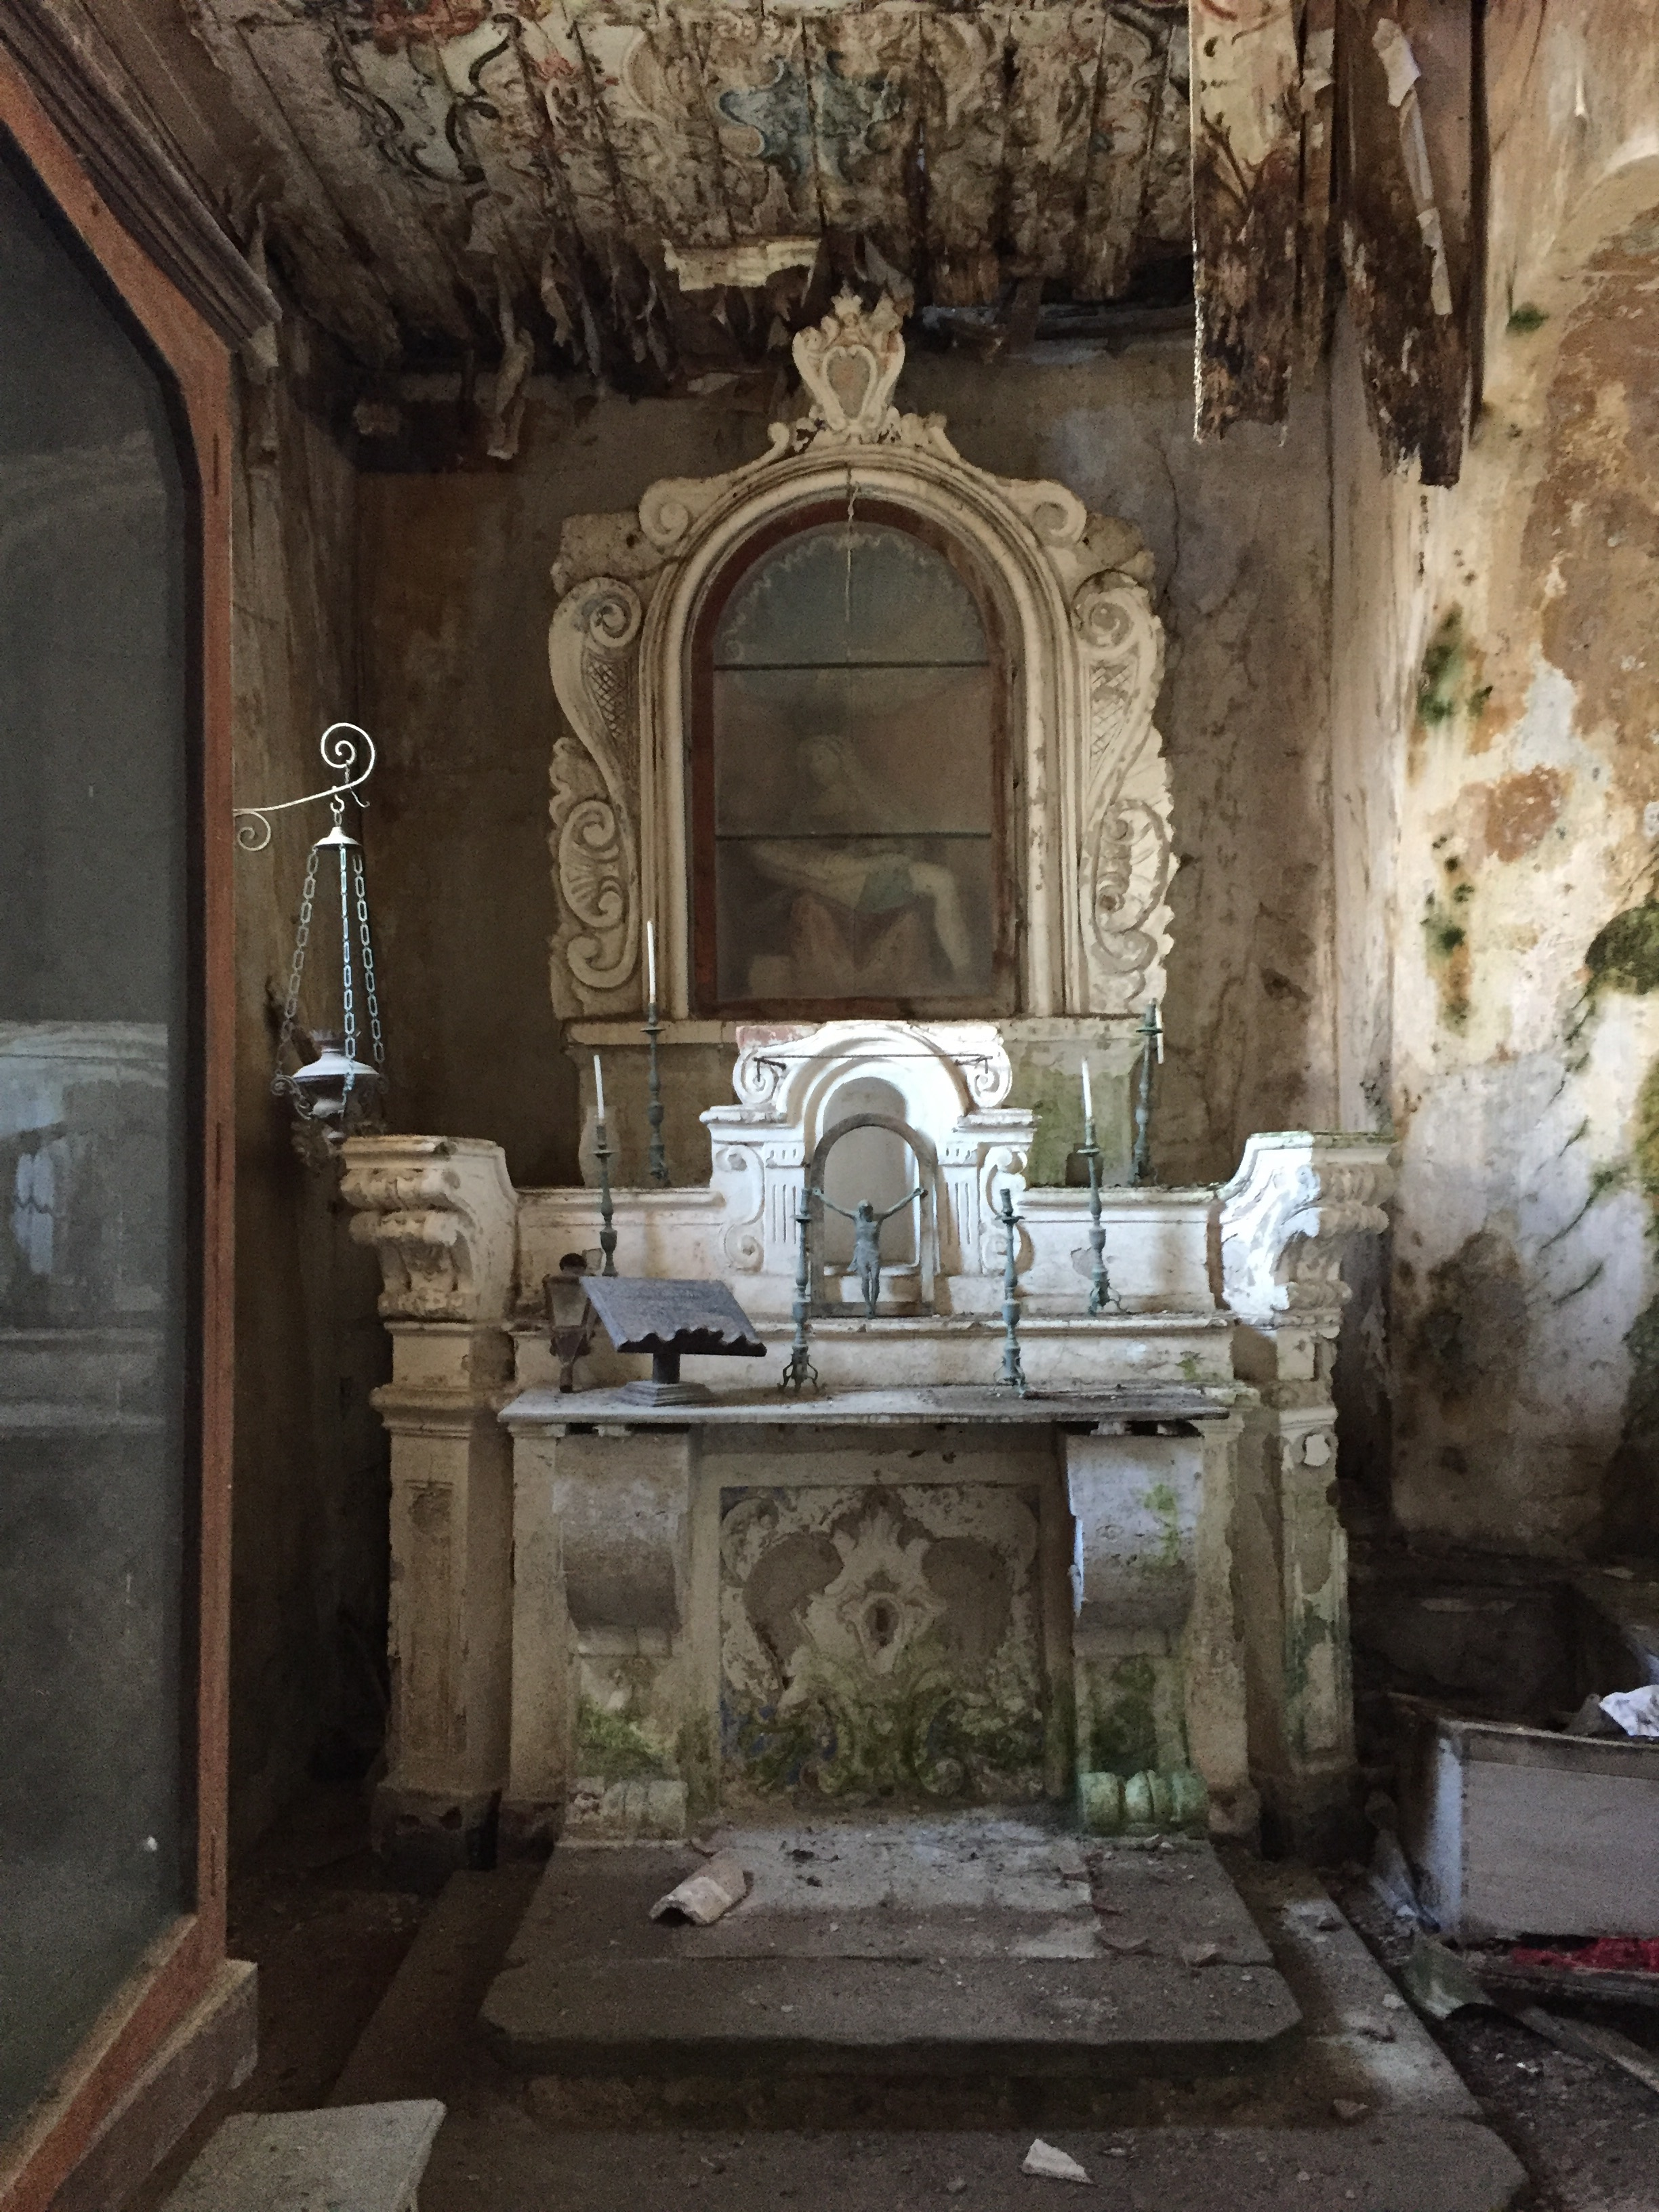 Guests discovered an abandoned chapel from the 18th century in Borgo Castellabate. A sculpture of the Pietá is still encased in the altar.